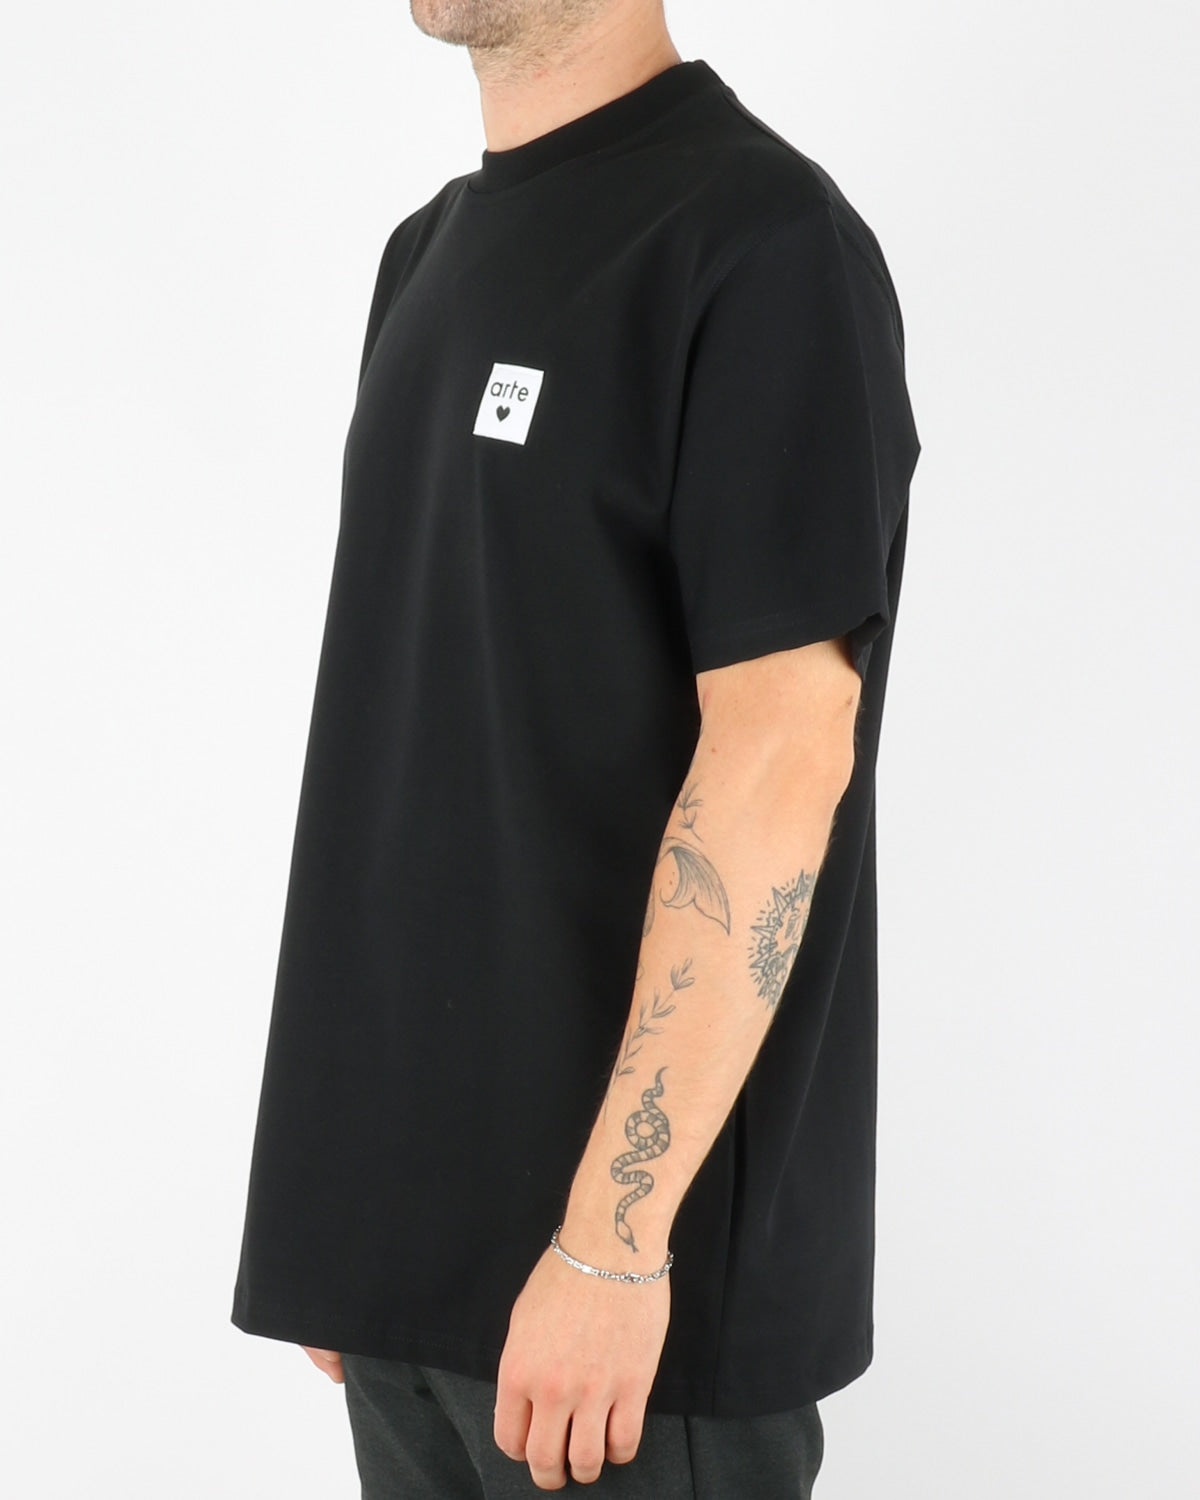 arte_toby heart label t-shirt_black_2_3